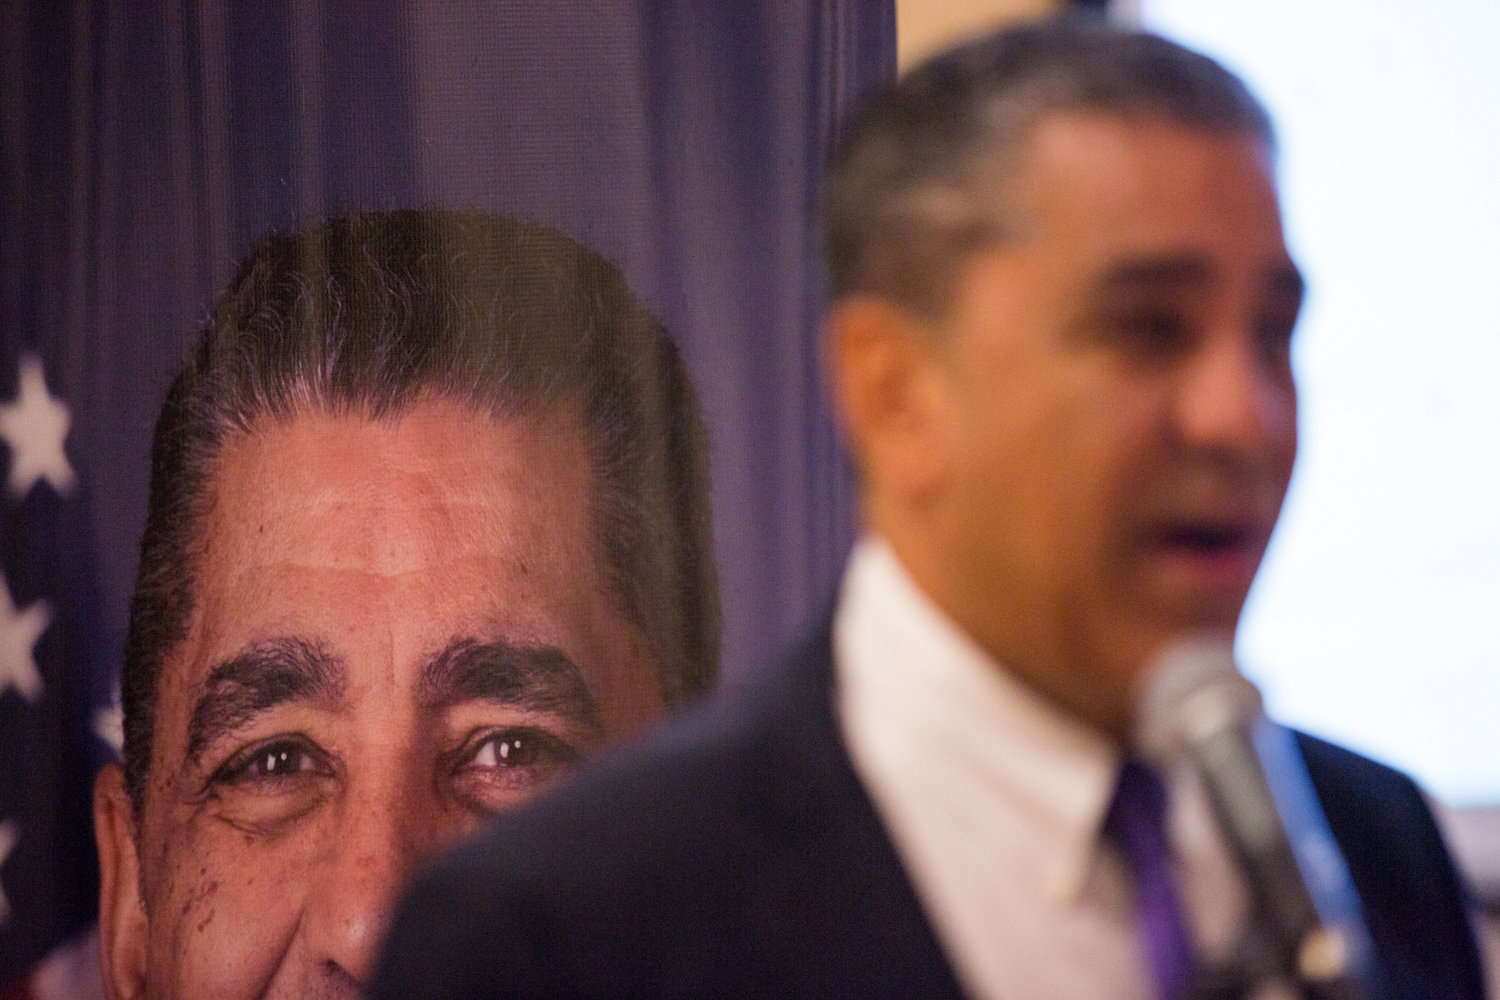 Local congressmen Jamaal Bowman and Adriano Espaillat rode out the Jan. 6 attack on Capitol Hill in their offices. Both voted for the second impeachment of President Donald Trump, and supported further investigation into what even federal prosecutors are calling an insurrection.